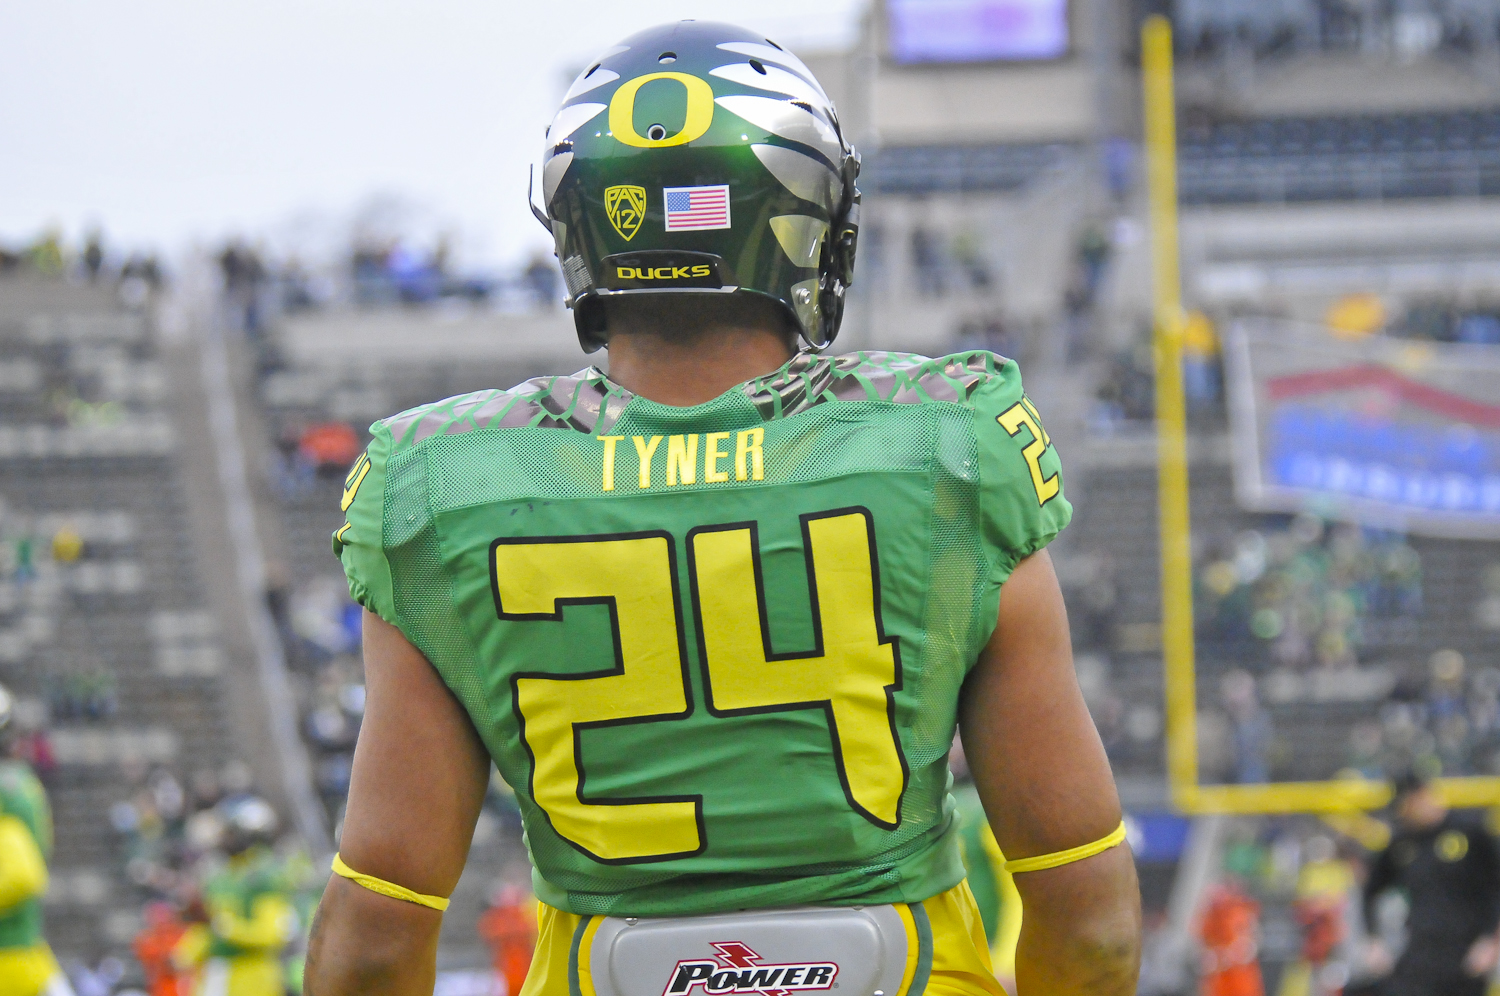 Tyner had a great game, finishing with 153 yards rushing